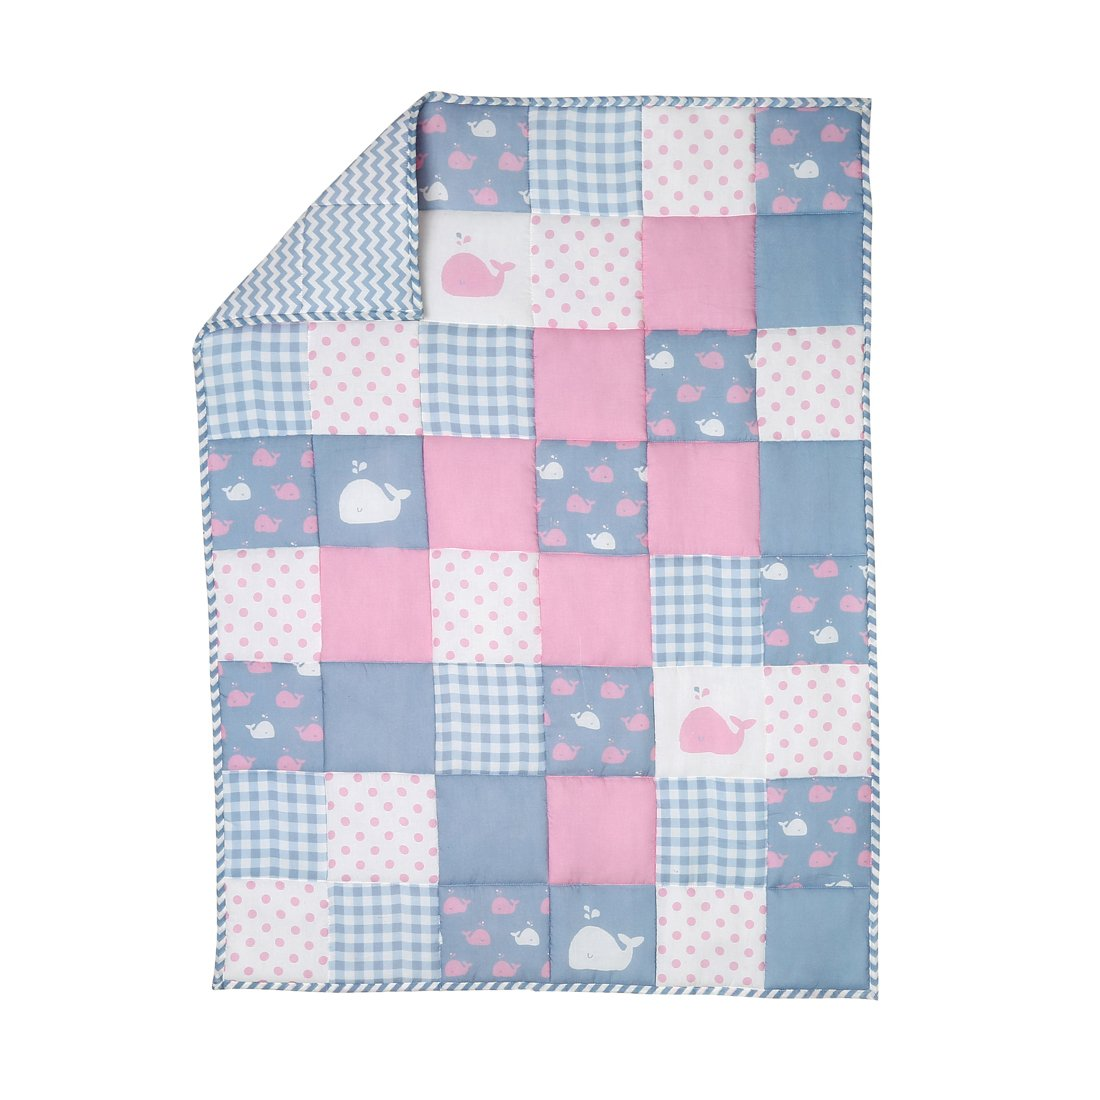 Pink Soft Baby Quilt for New Born Girls and Boys - Crib Baby Blanket Cover Cotton Cute Whale Pattern Toddler Comforter